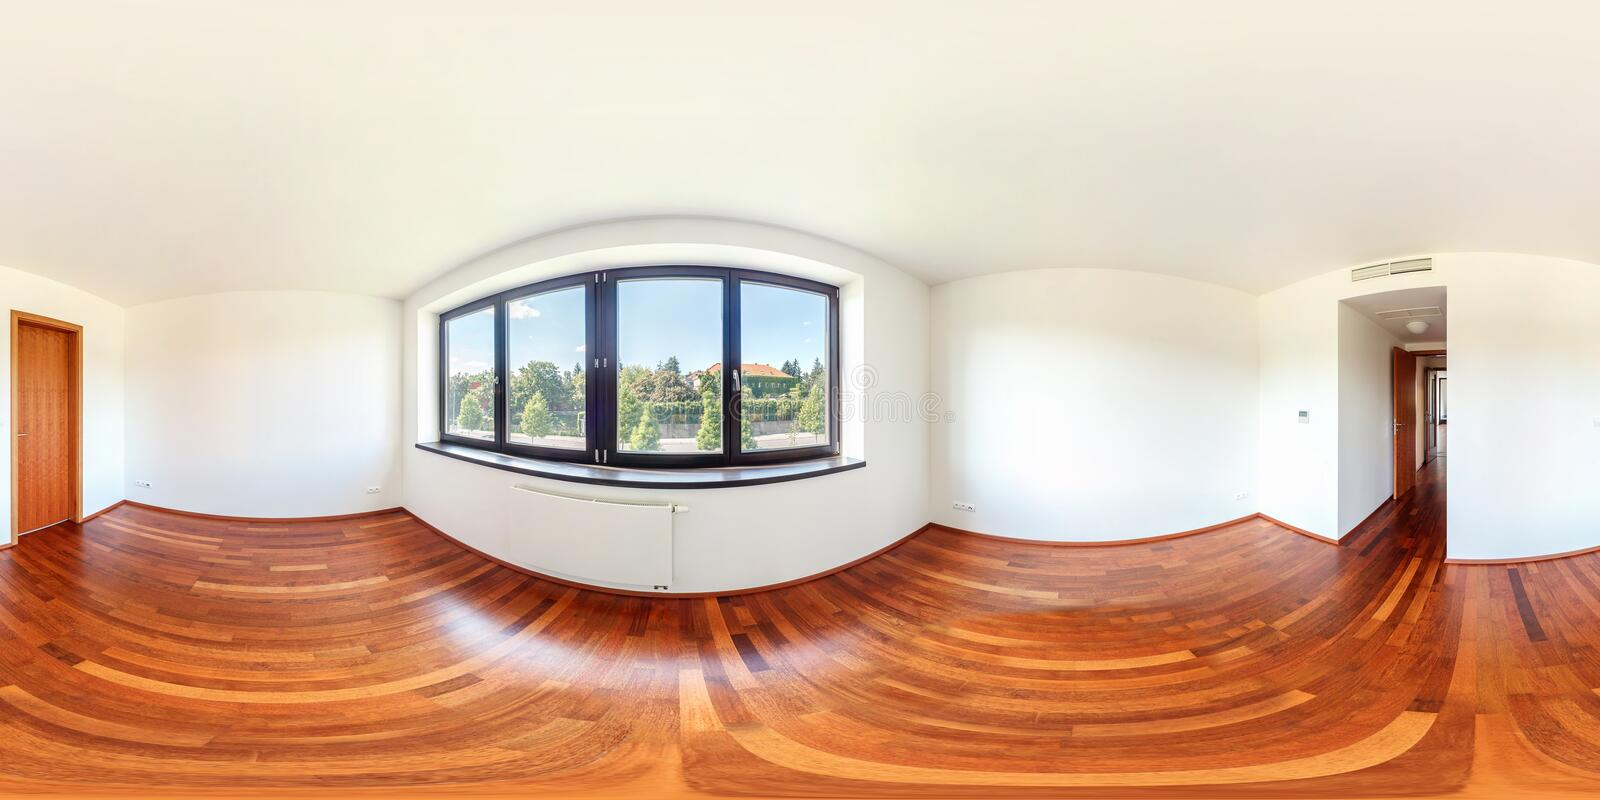 PRAHA, Czech Republic - JULY 21, 2014: Panorama of modern white empty loft apartment interior living hall room, full 360 seamless. Panorama in equirectangular royalty free stock photos